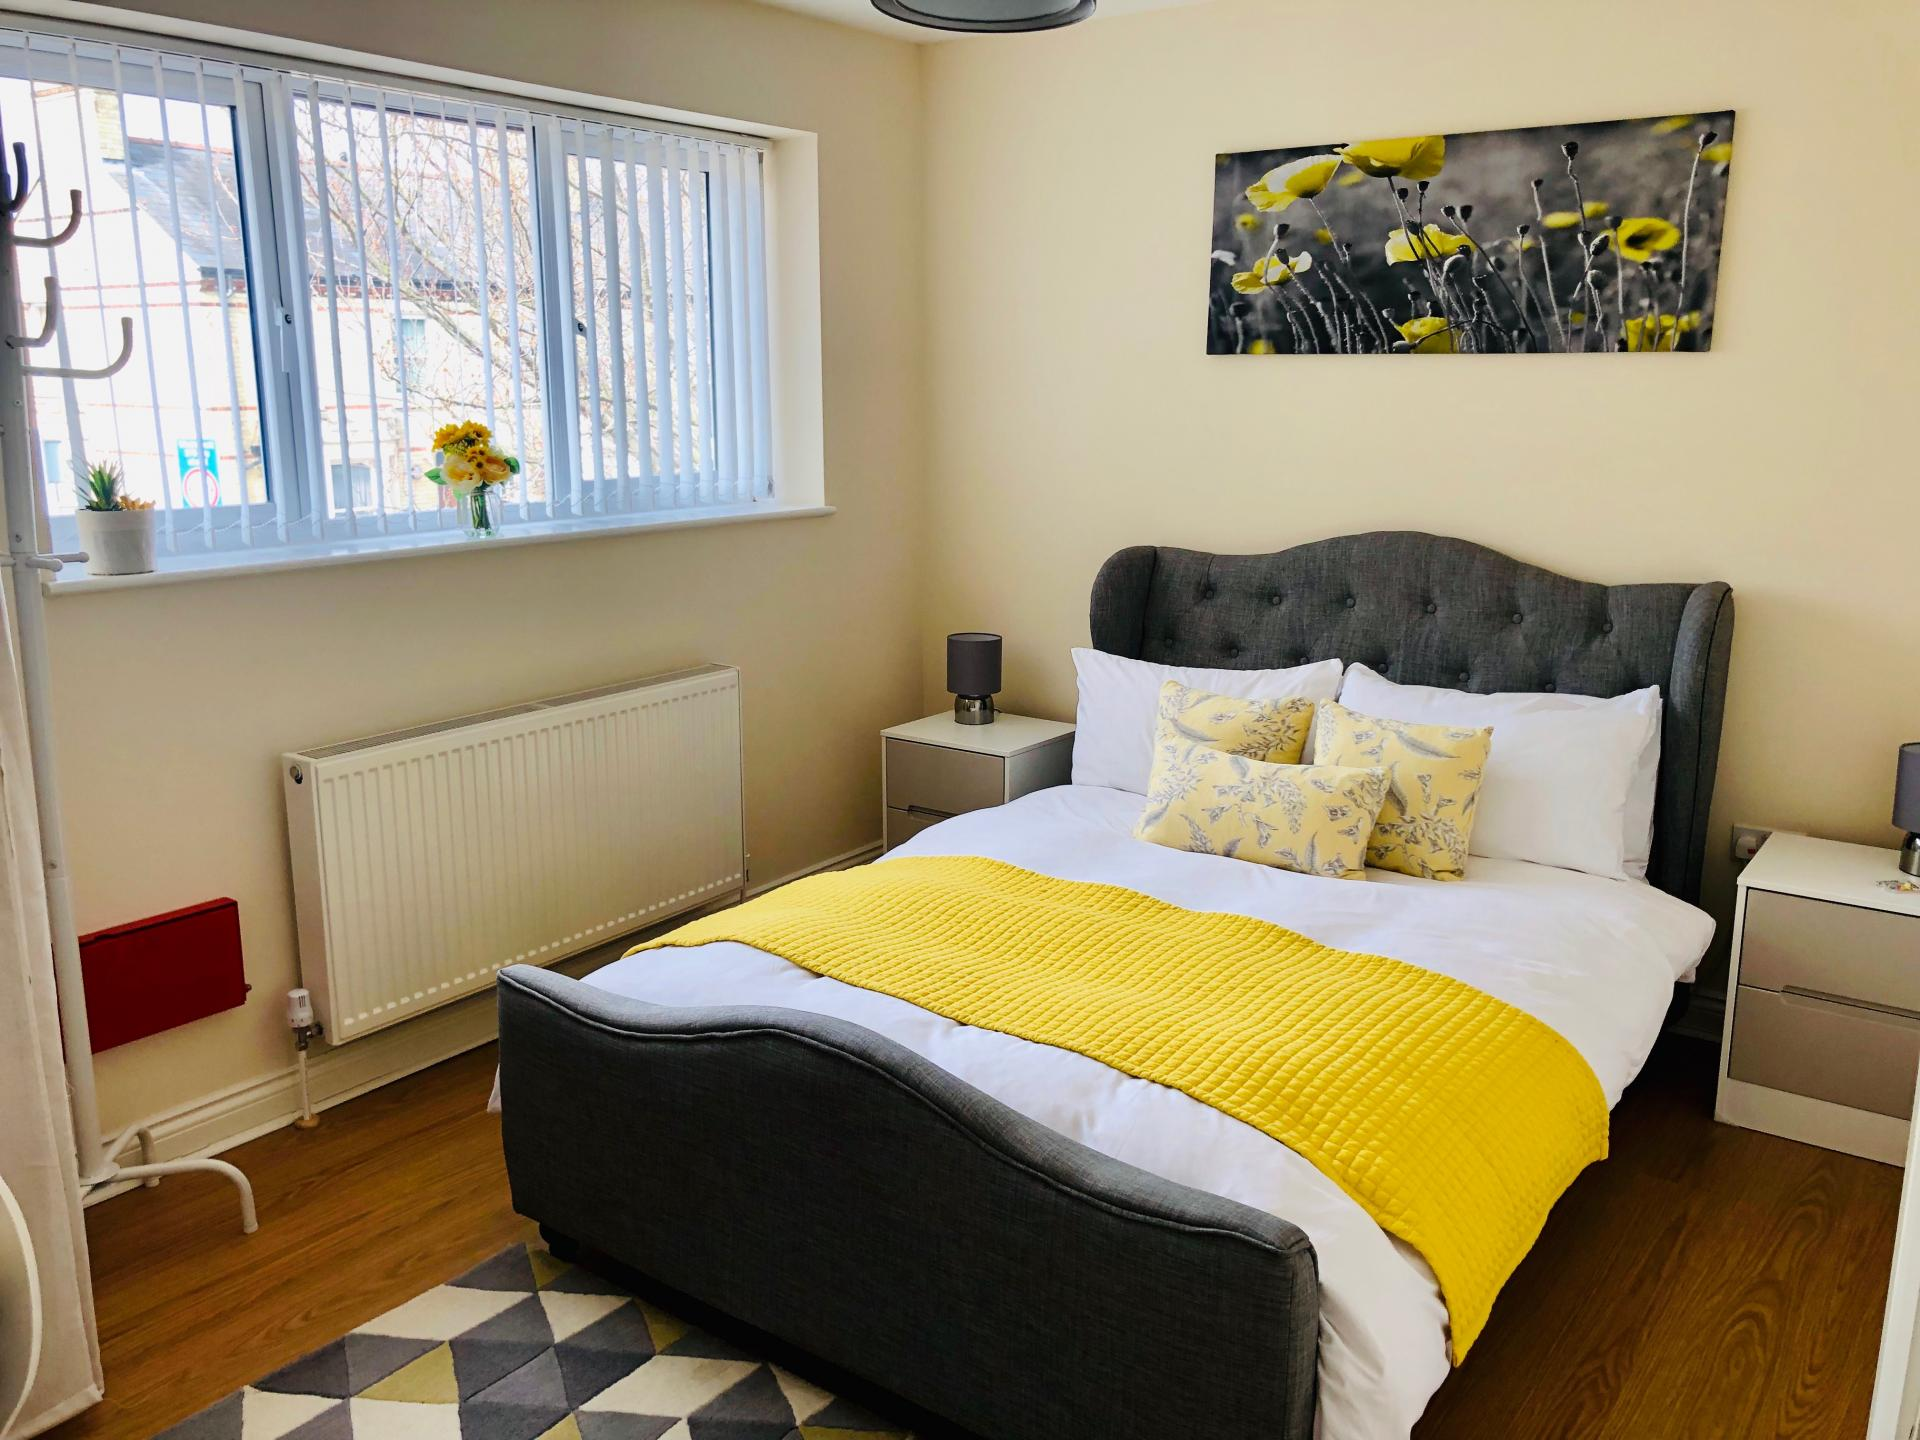 Bed  at The Vinery Apartment - Citybase Apartments